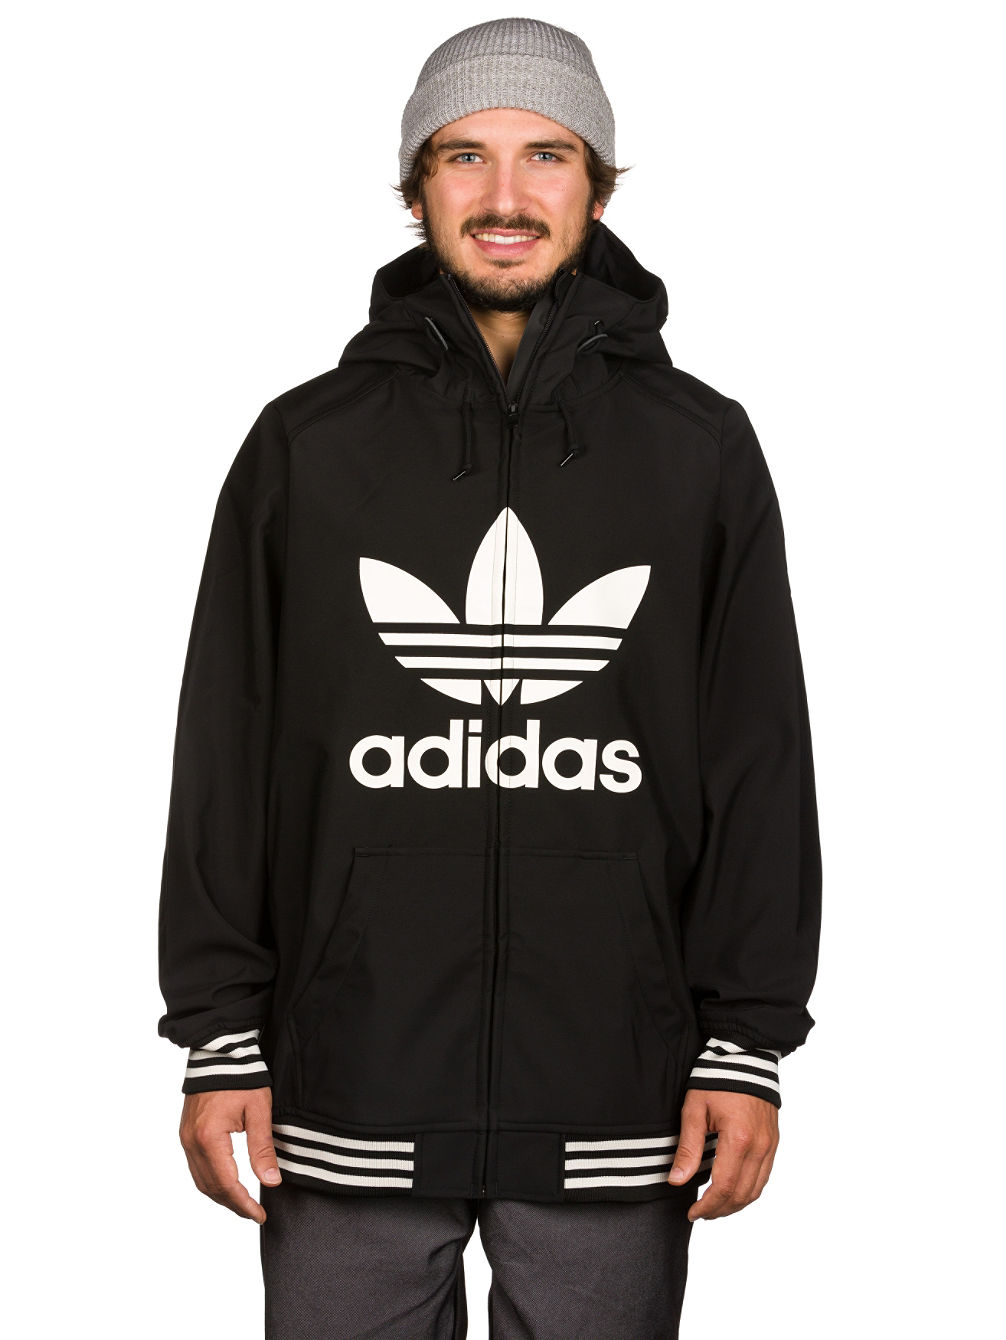 Buy adidas Snowboarding Greeley SS Jacket online at blue-tomato.com 0ddd5de62f